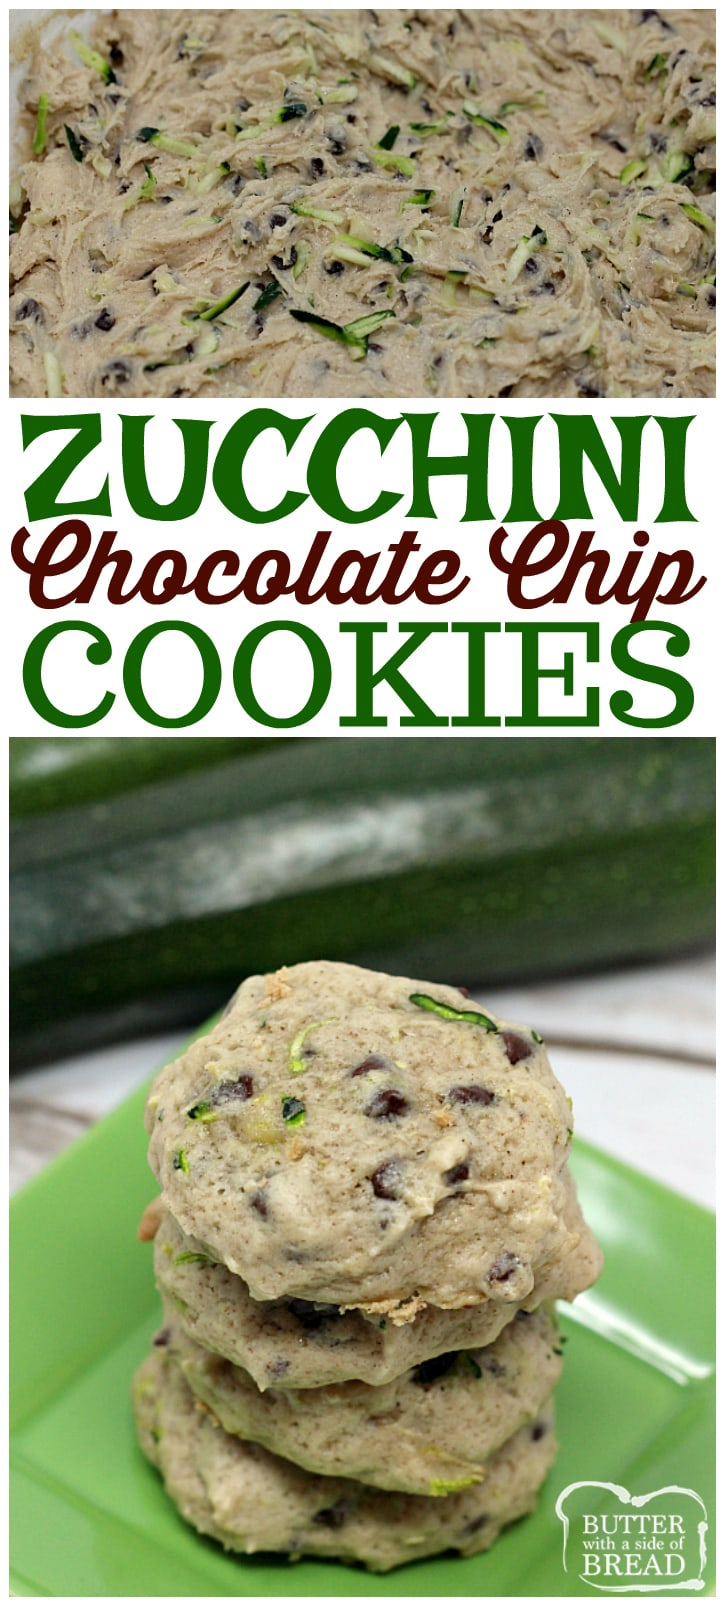 Zucchini Chocolate Chip Cookies are so soft and yummy, plus this is a delicious way to sneak in some veggies and use up all the #zucchini from your garden! Easy #cookie recipe from Butter With A Side of Bread